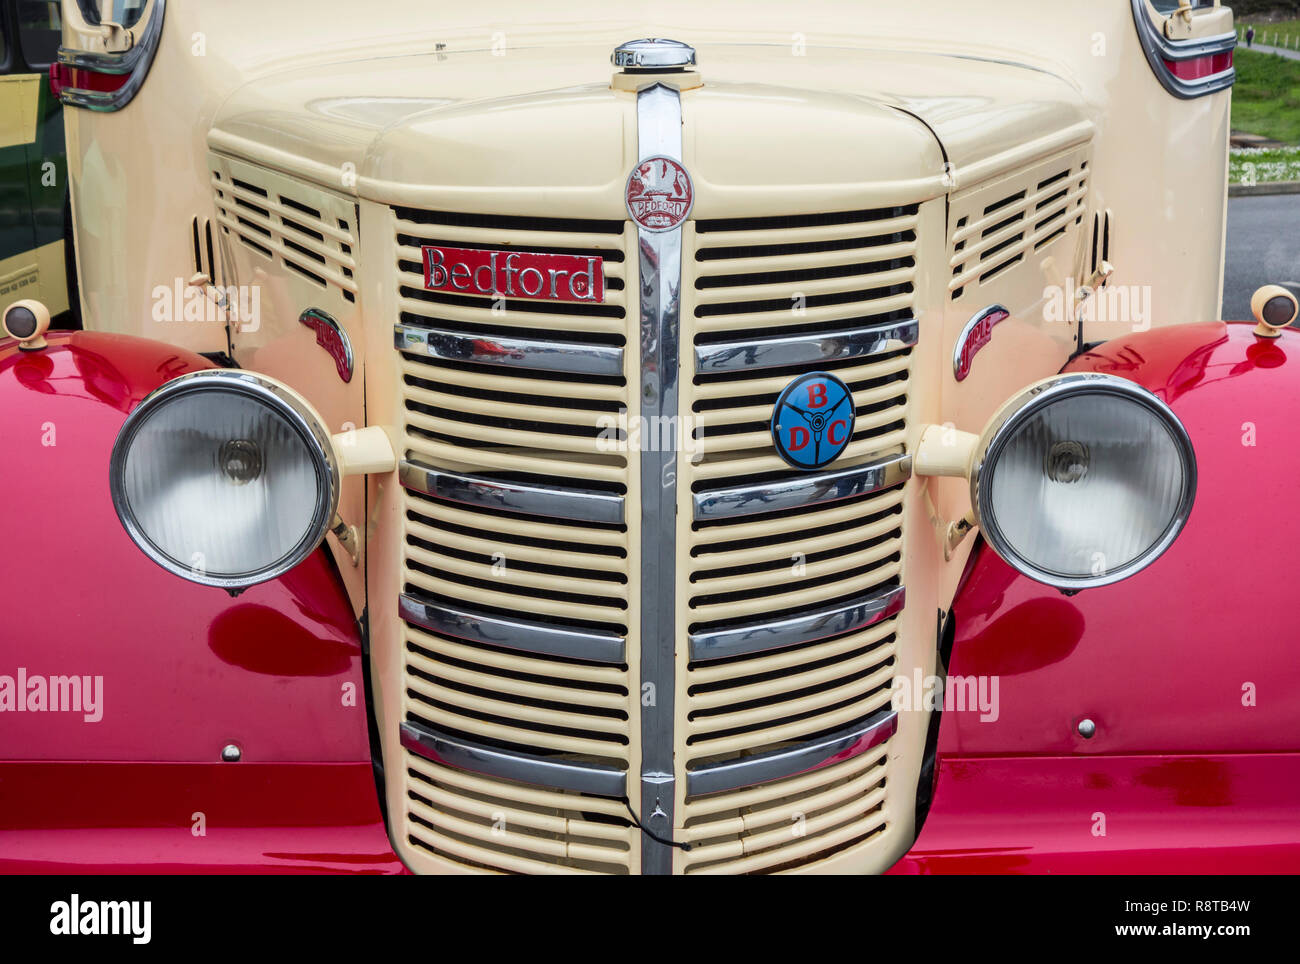 1950 Bedford OB Duple Vista Coach, close up of radiator grill and headlights - Stock Image